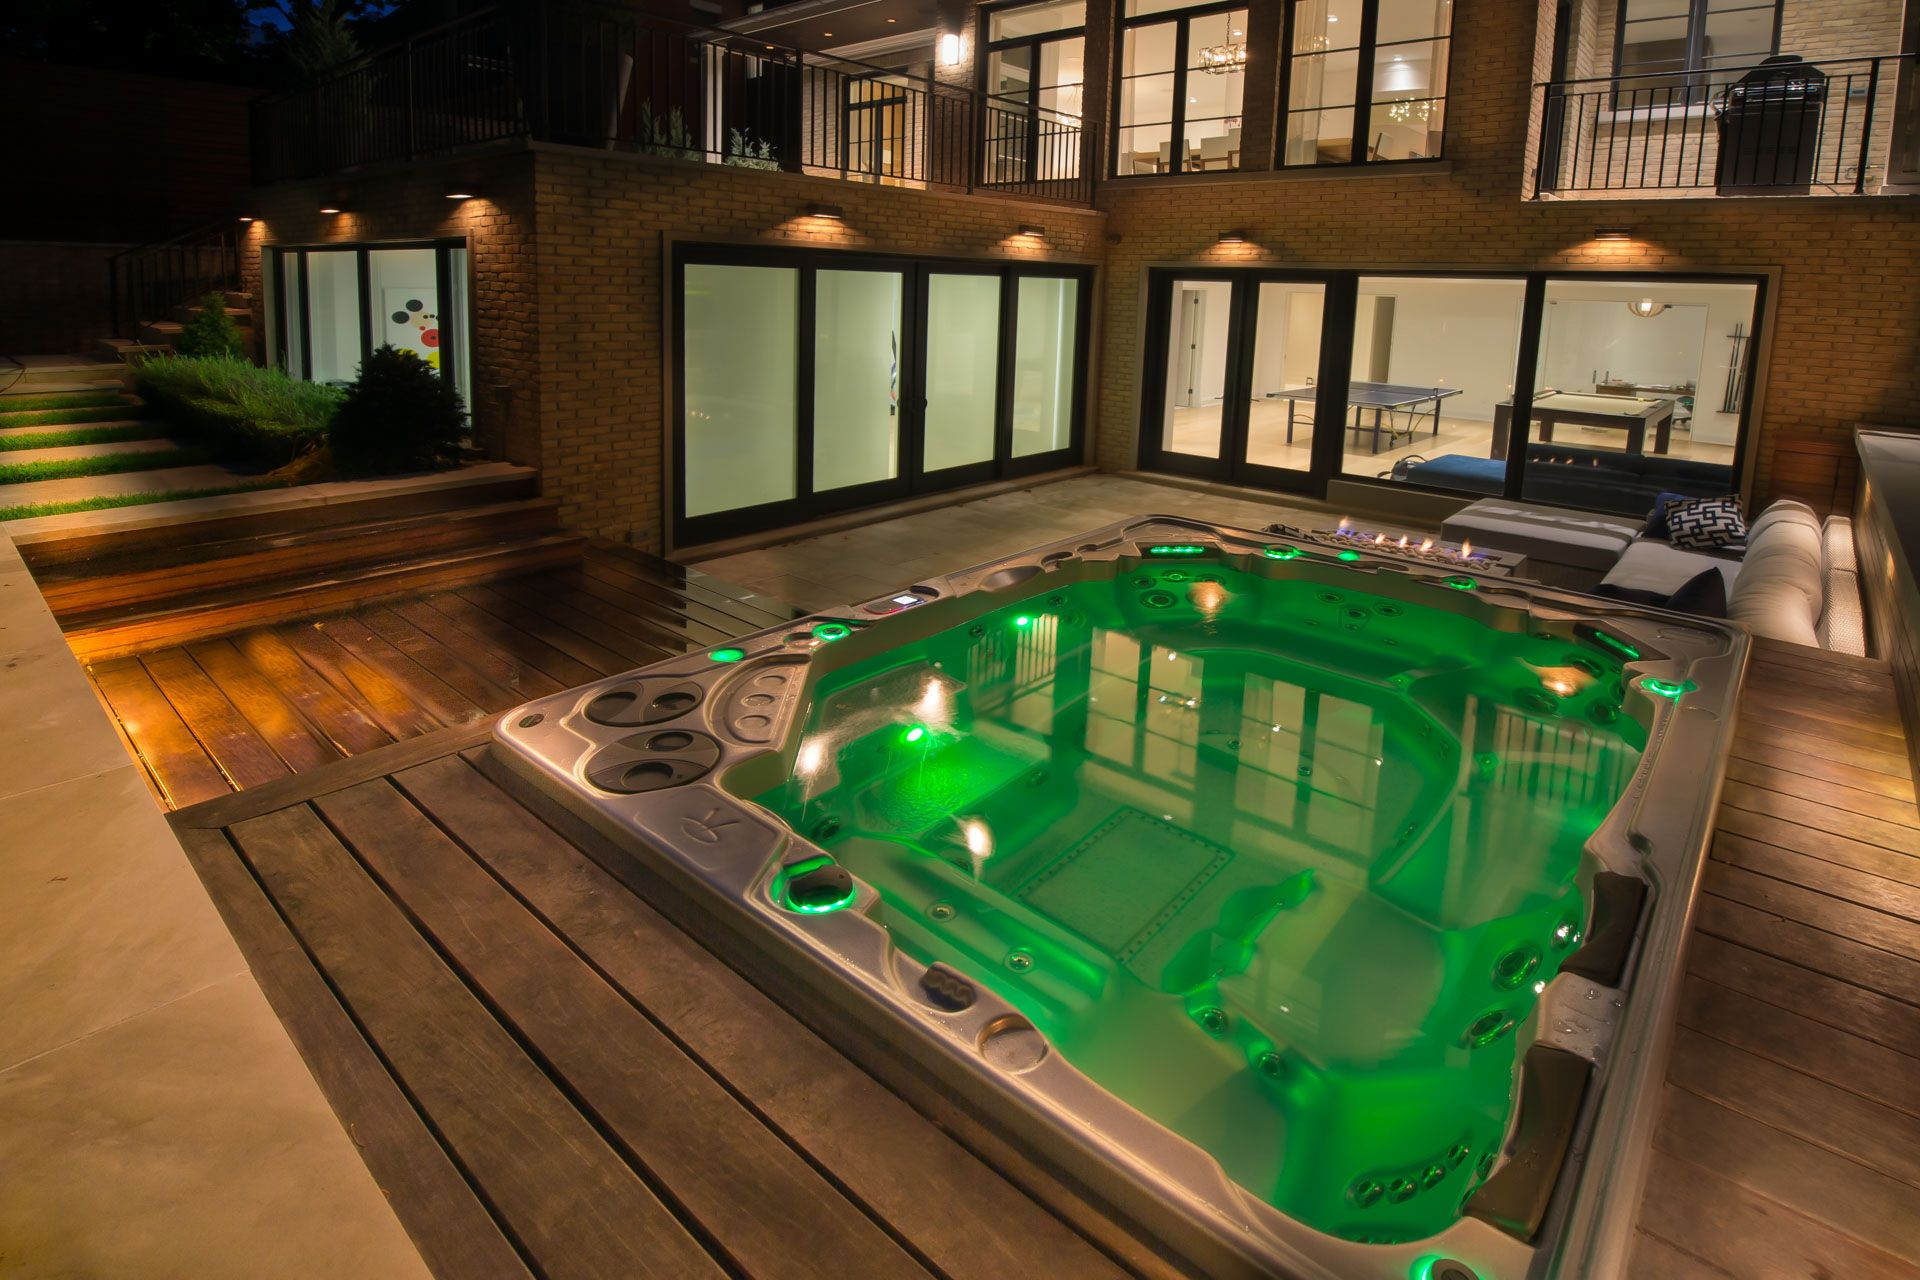 The 1038 is the biggest Self-Cleaning hot tub available at 8ft wide ...